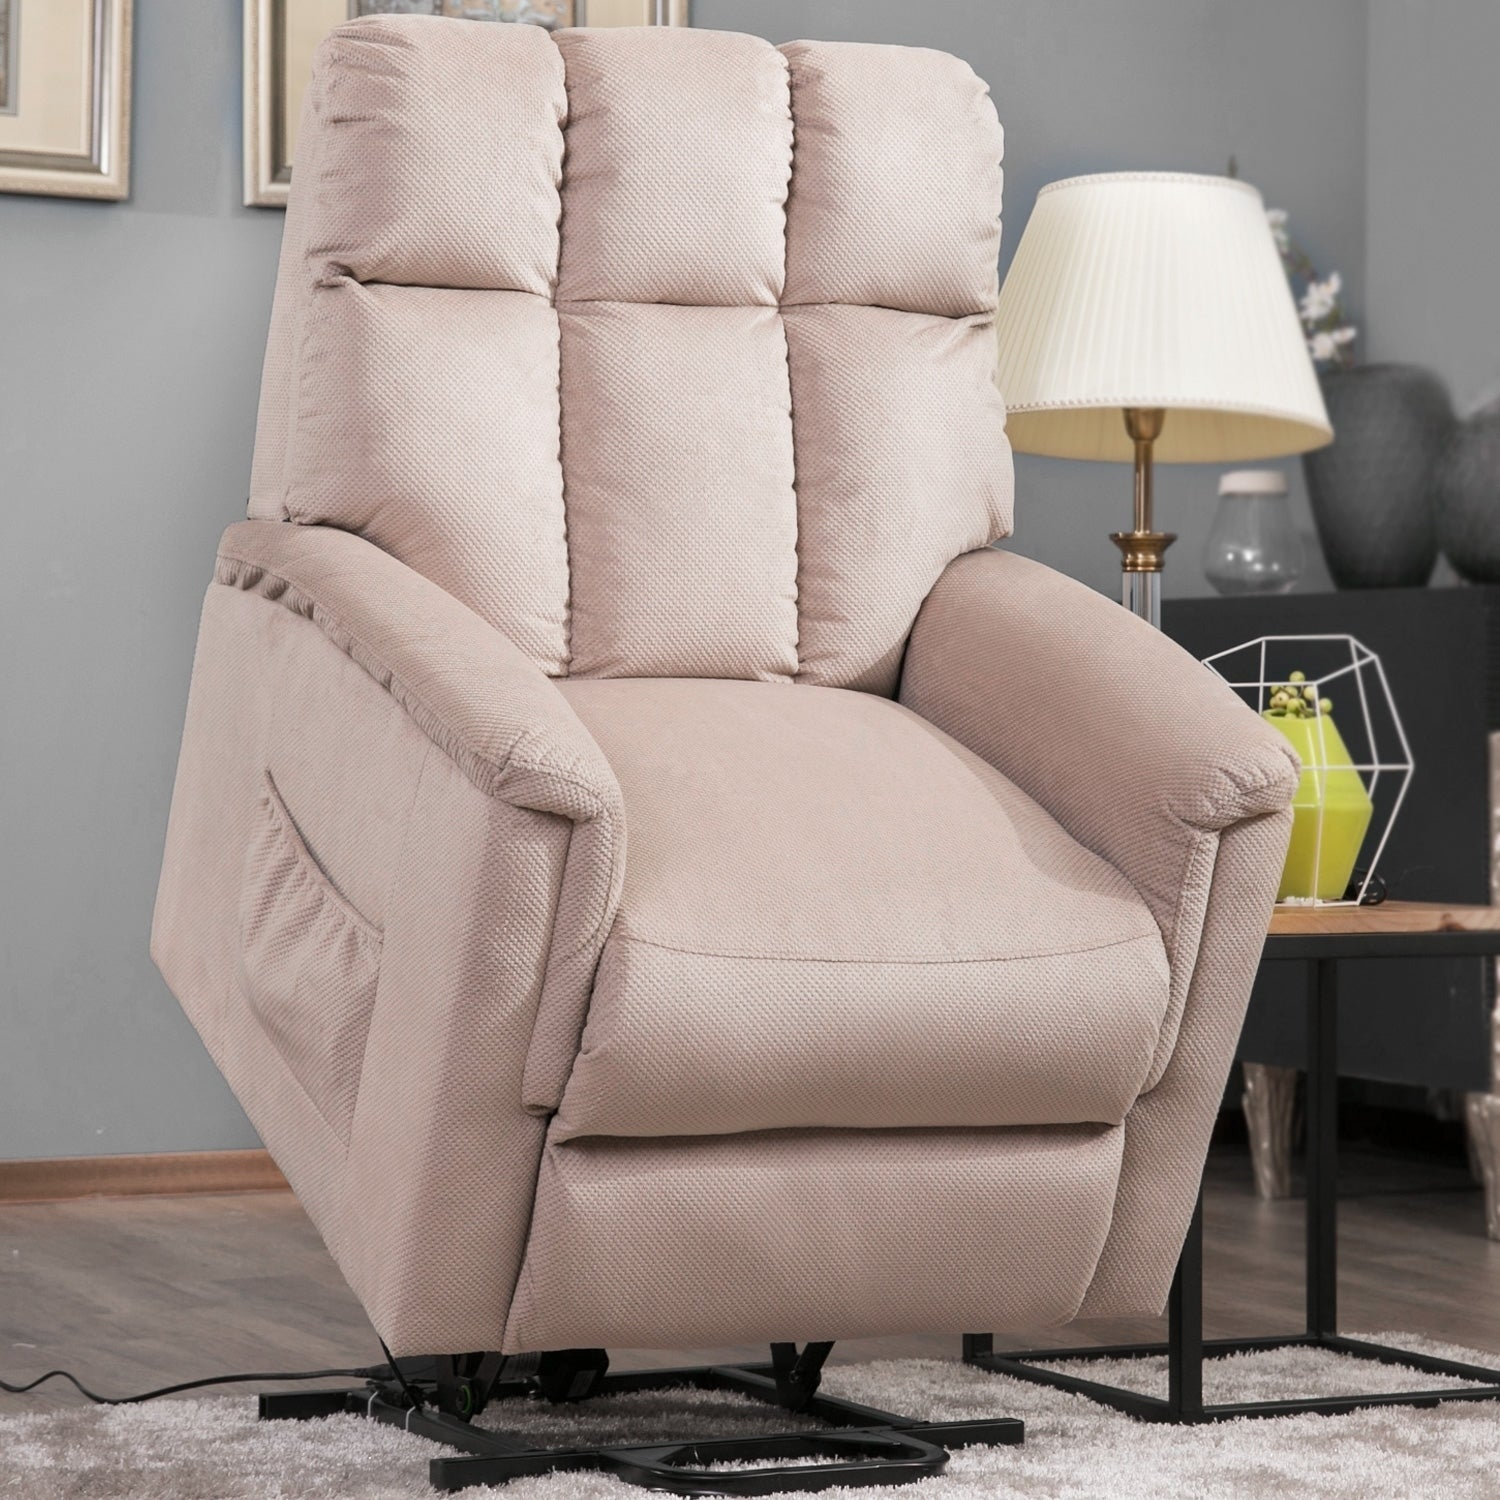 Harper & Bright Designs Power Lift Chair Soft Fabric Recliner Lounge Living Room Sofa with Remote Control